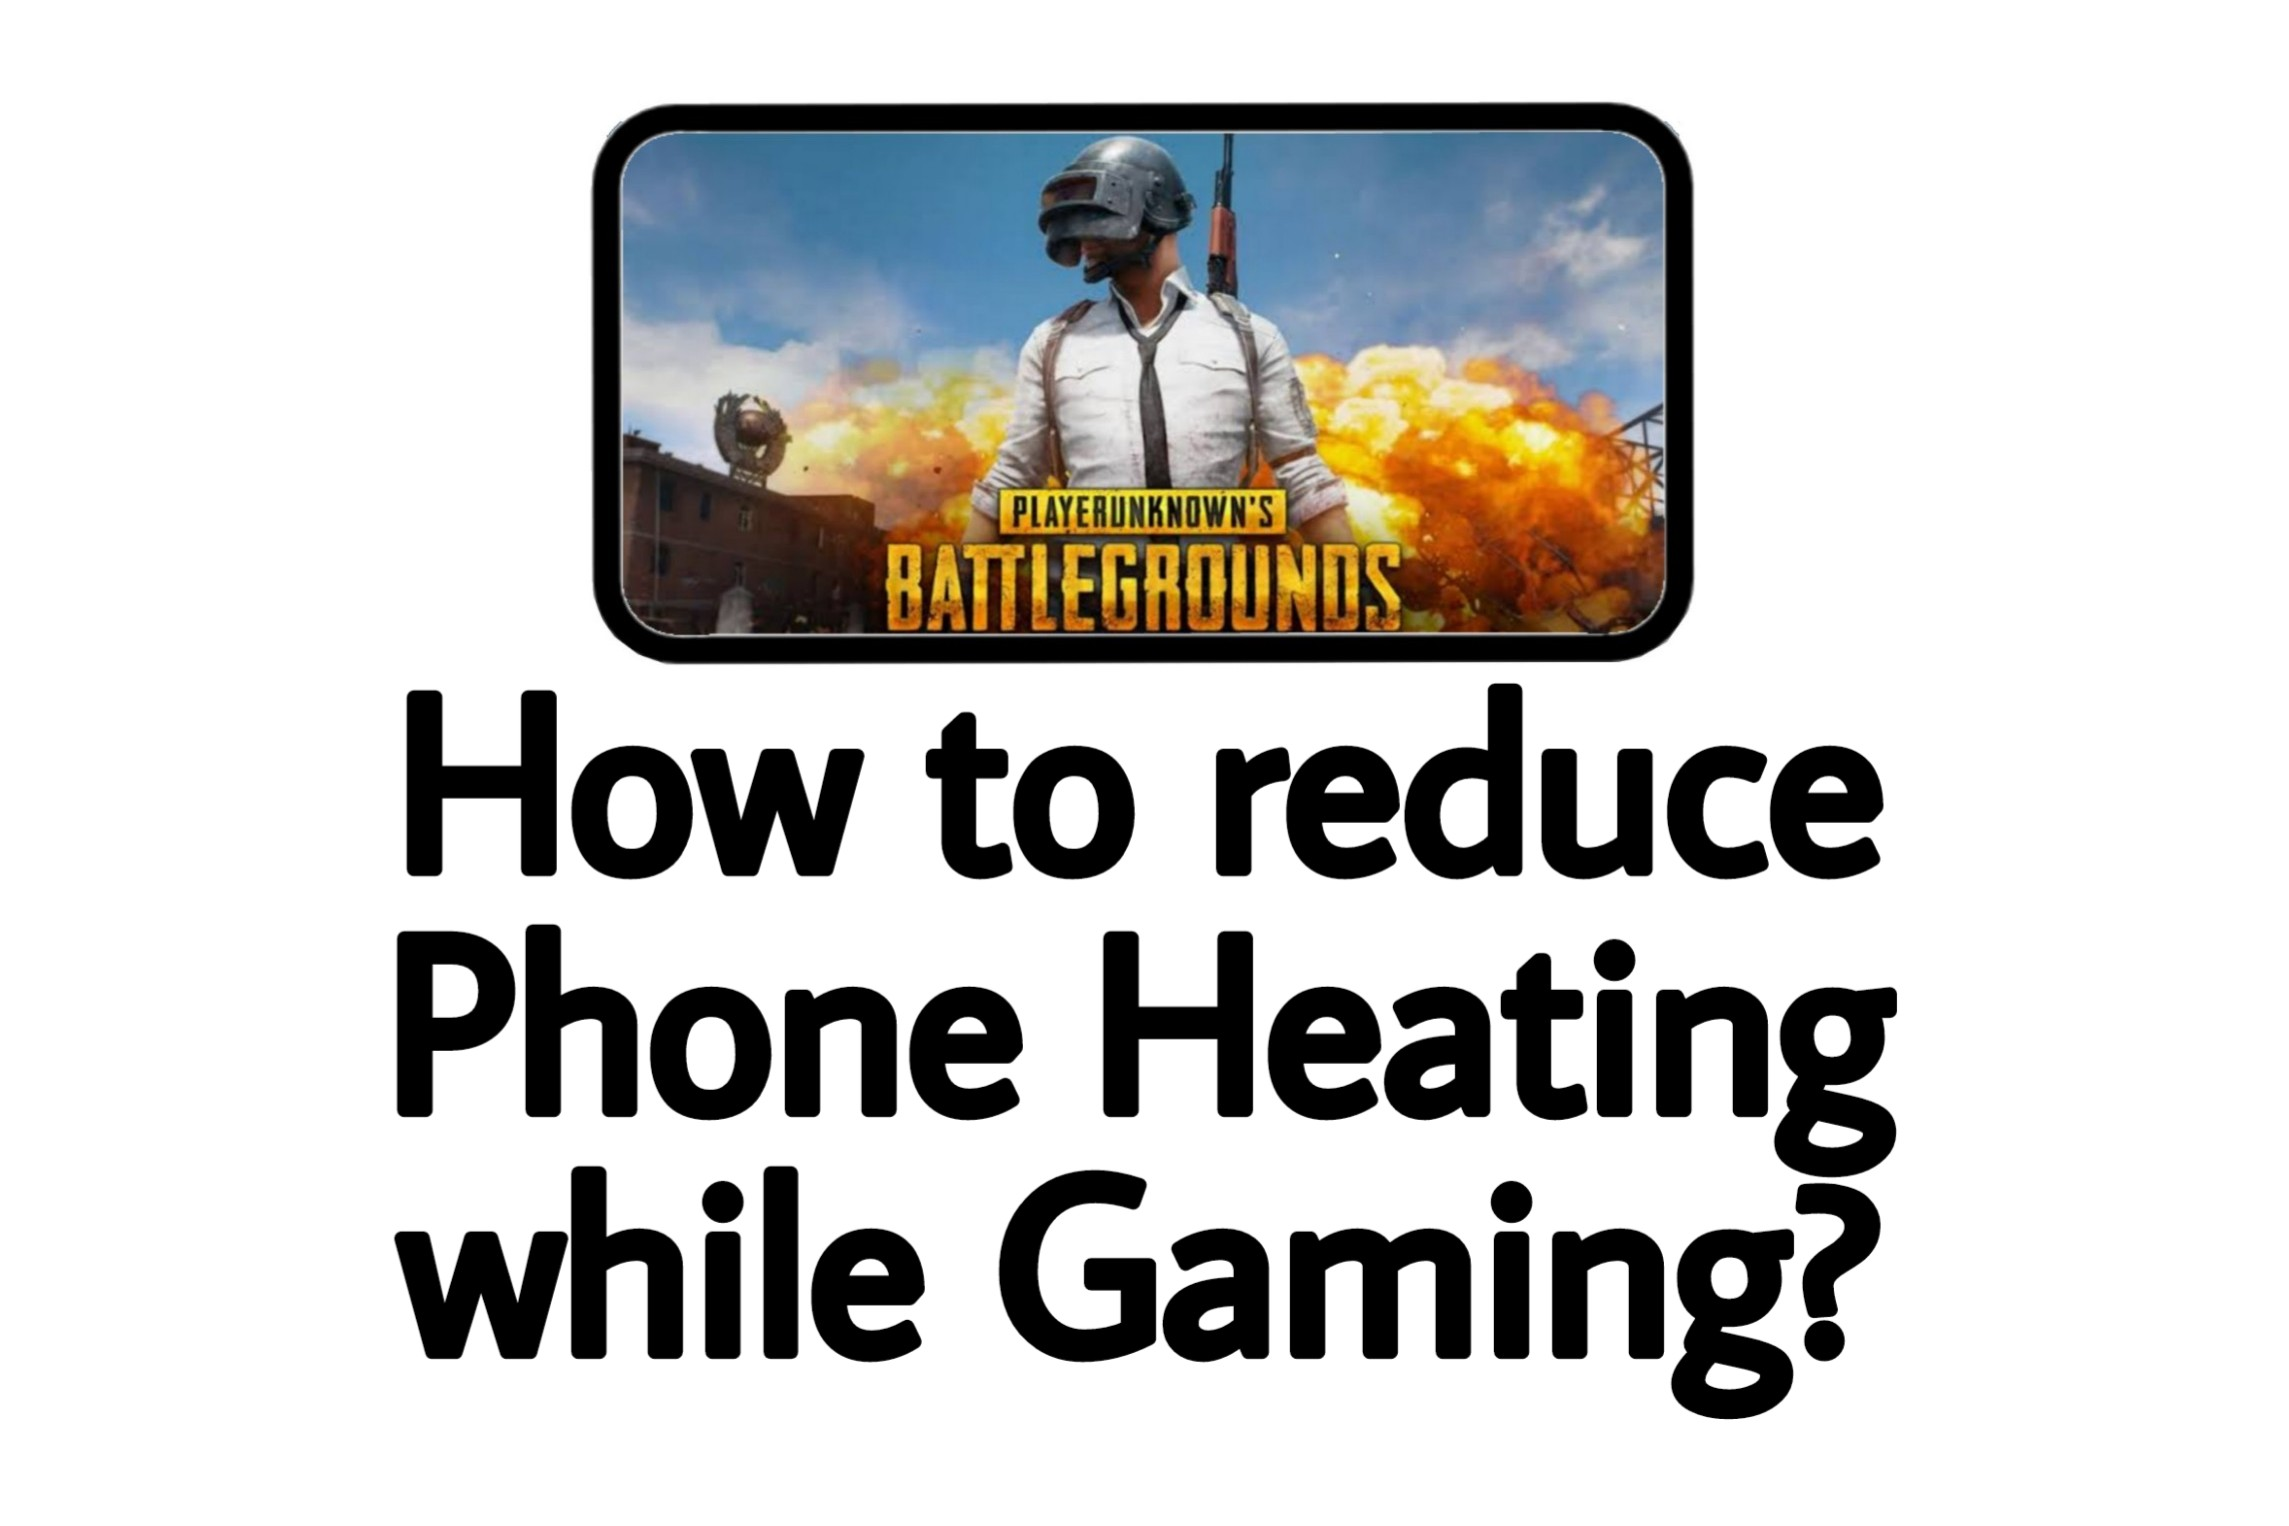 How to redduce phone heating while gaming